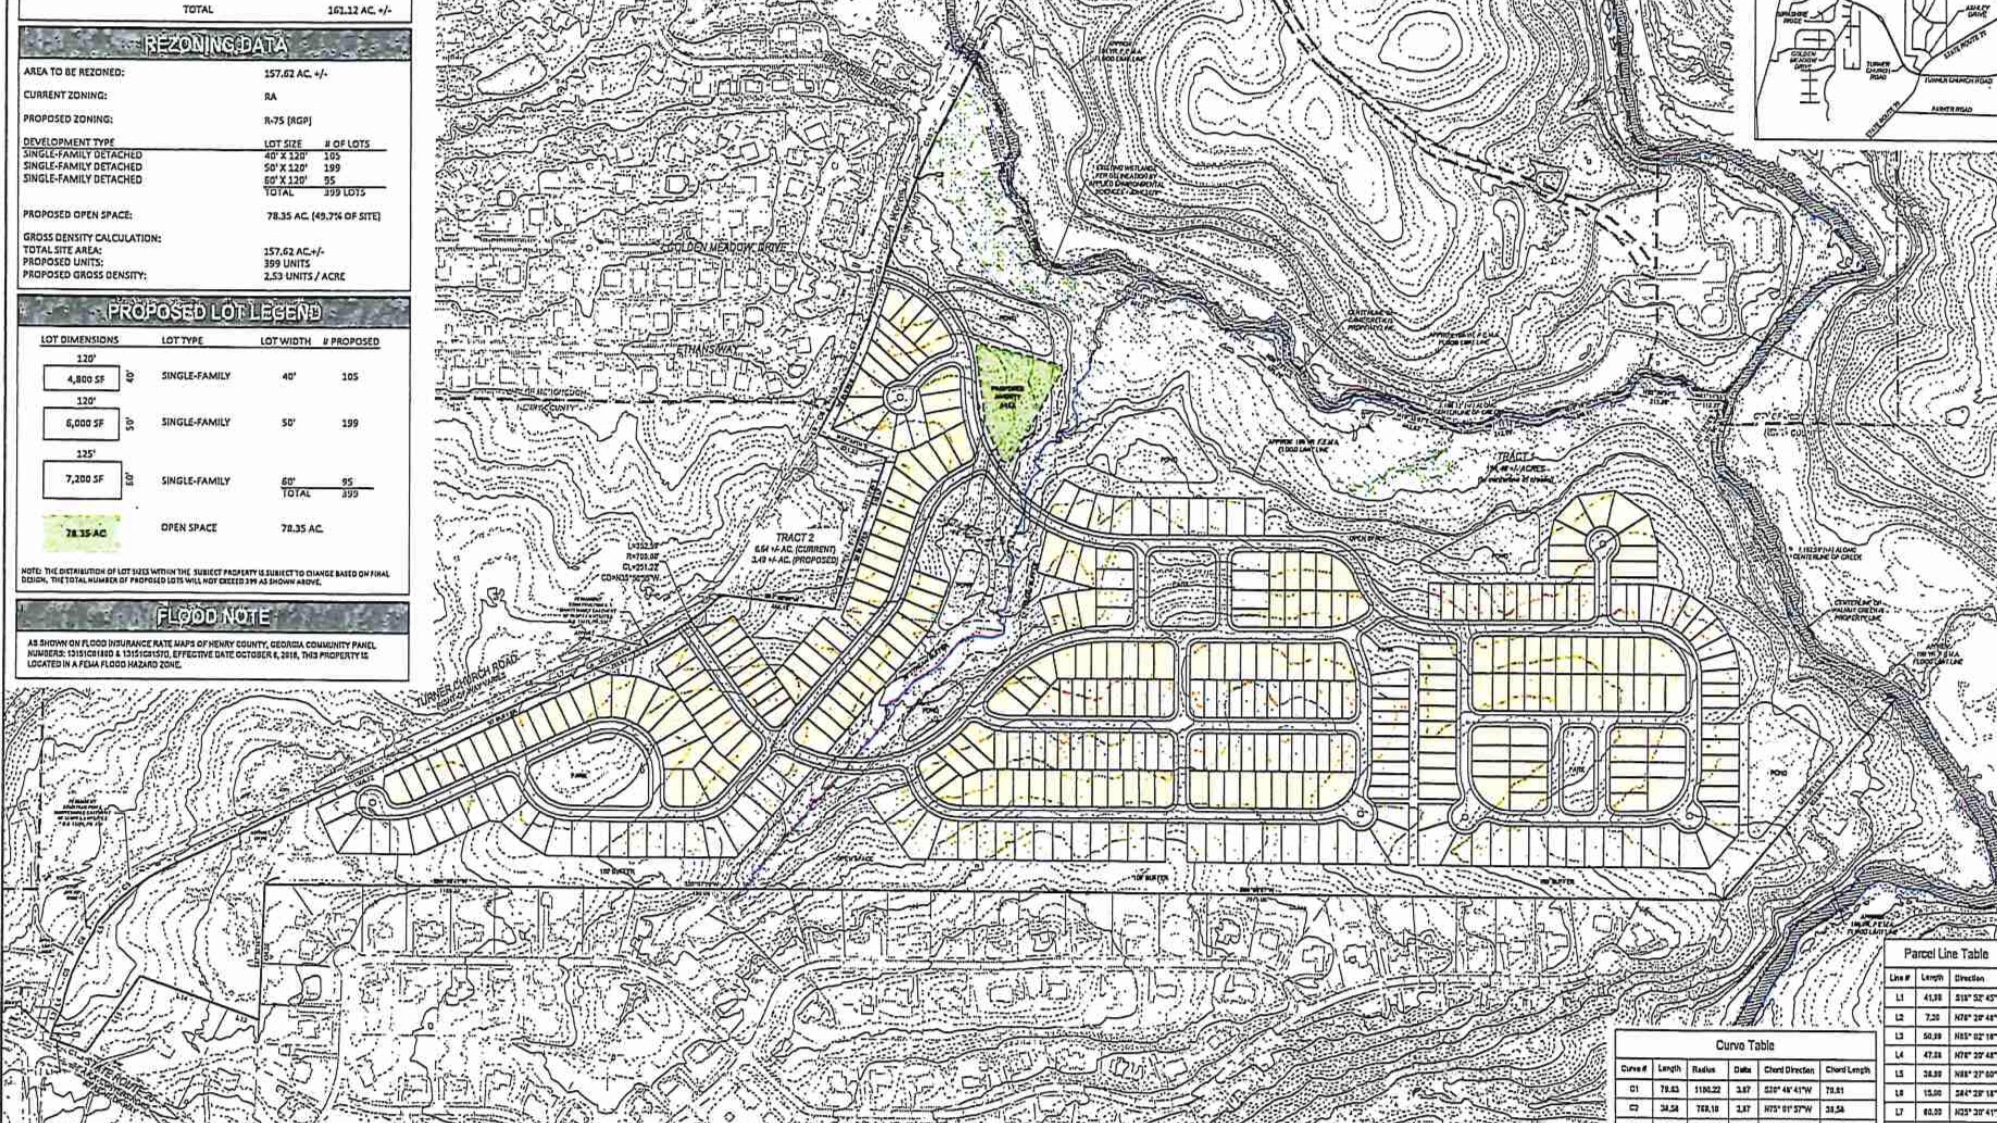 Concept site plan for 343 Turner Church Road residential development (applicant photo)